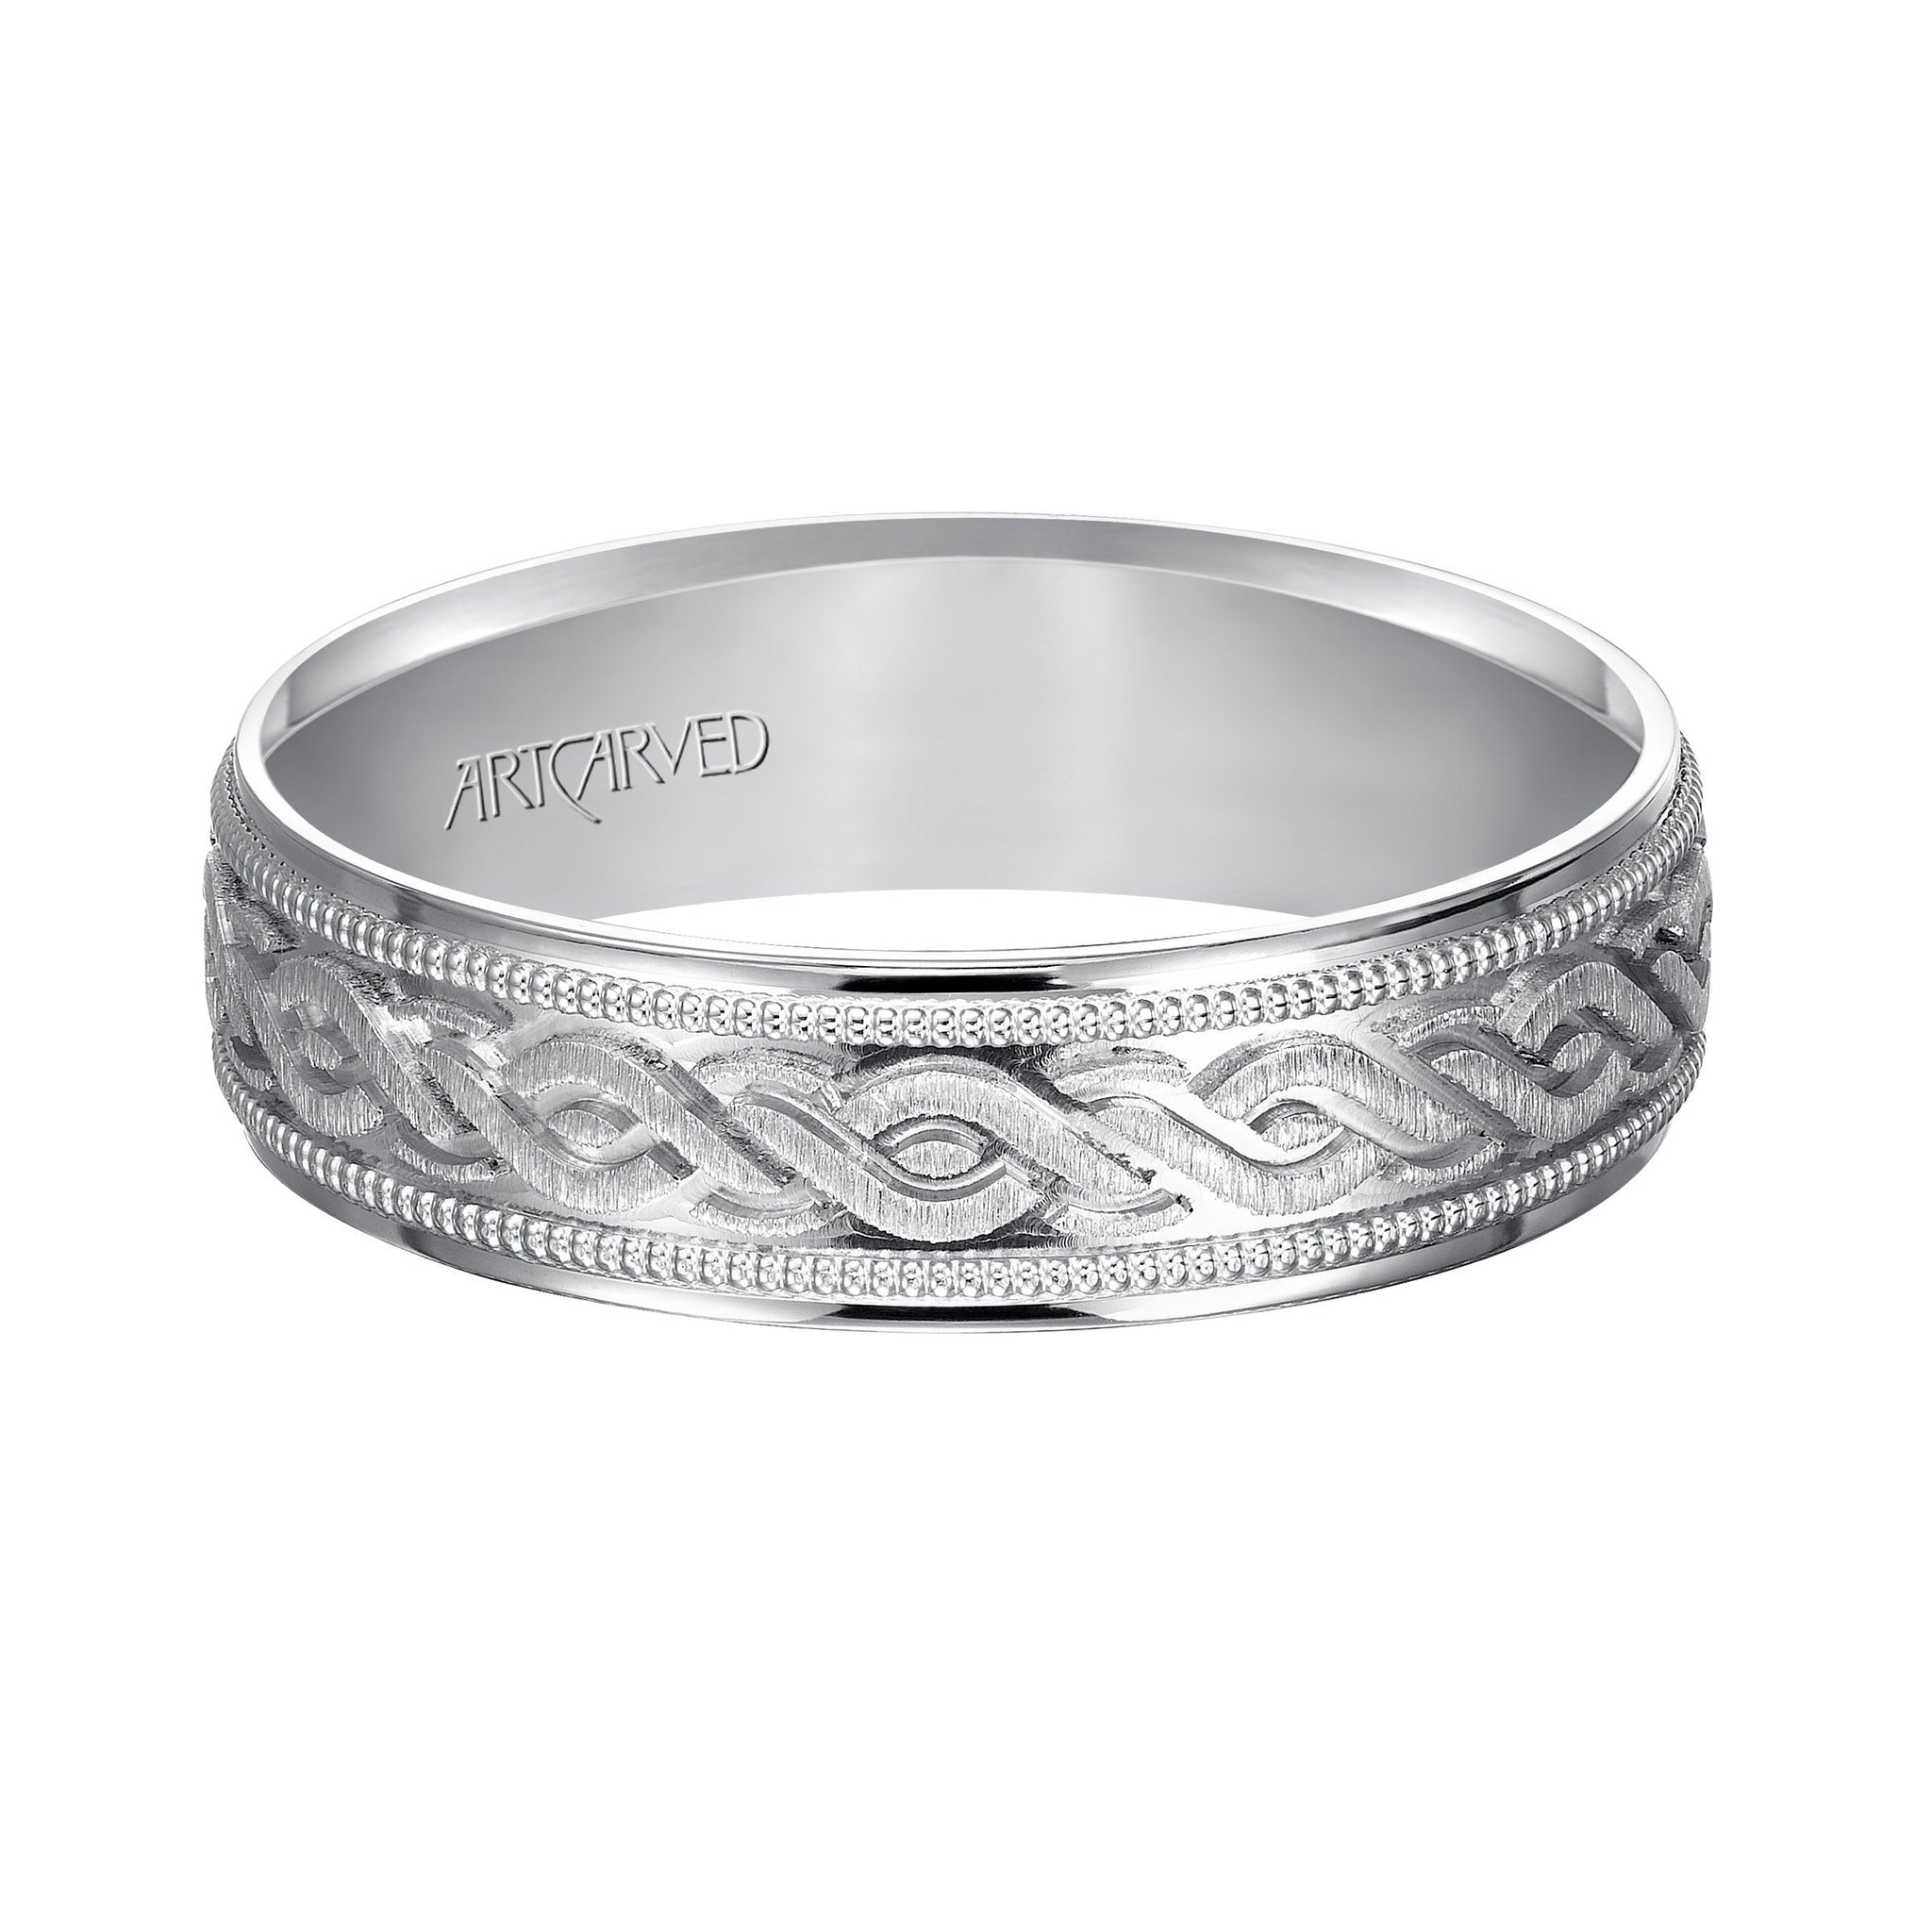 14K White Gold Engraved Band